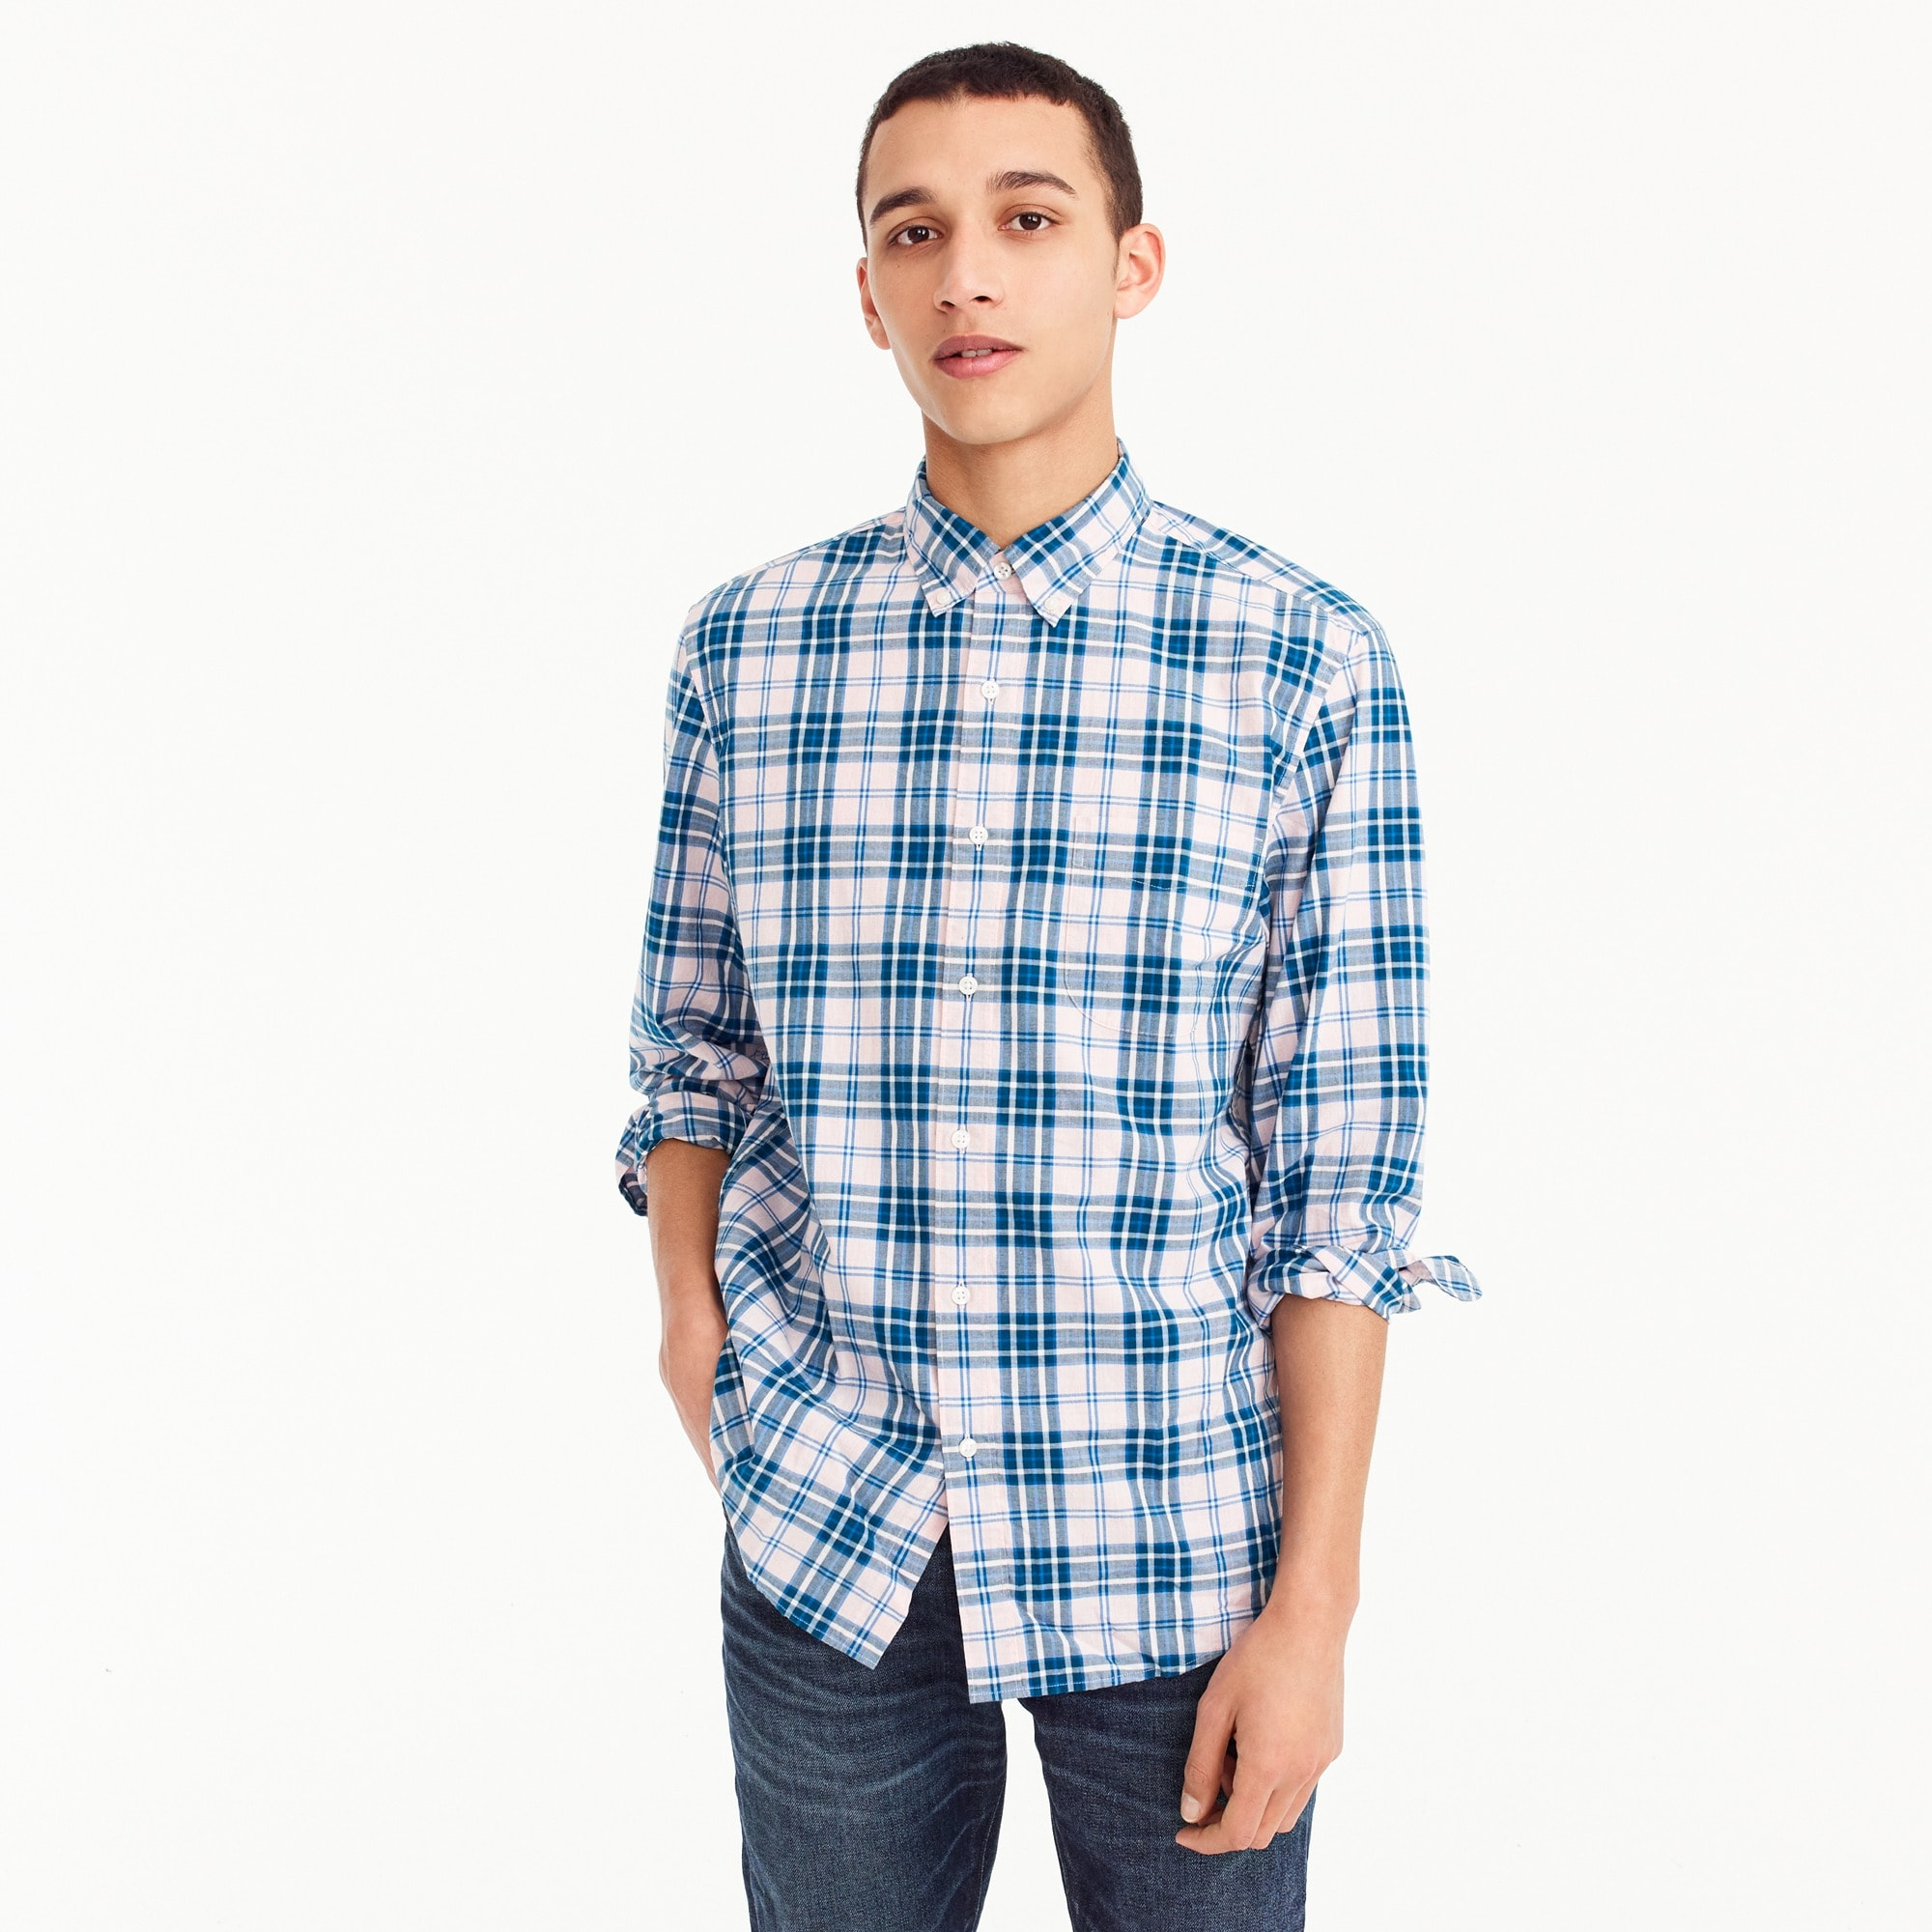 Stretch Secret Wash shirt in heather poplin plaid men new arrivals c